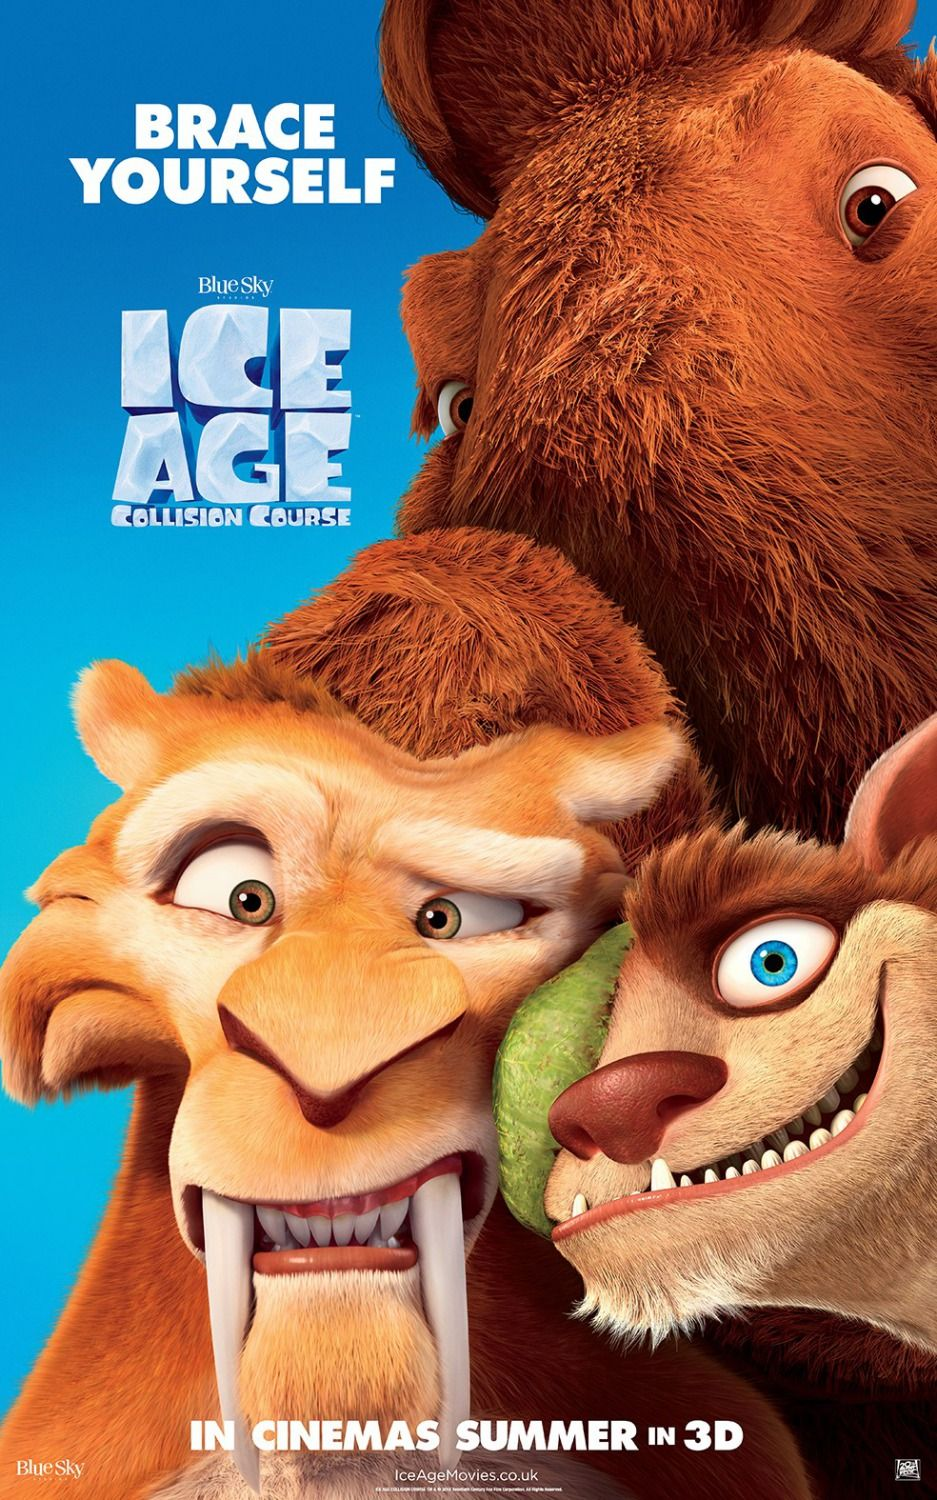 Ice Age 5 Extra Large Movie Poster Image Internet Movie Poster Awards Gallery Ice Age Collision Course Ice Age Ice Age Movies